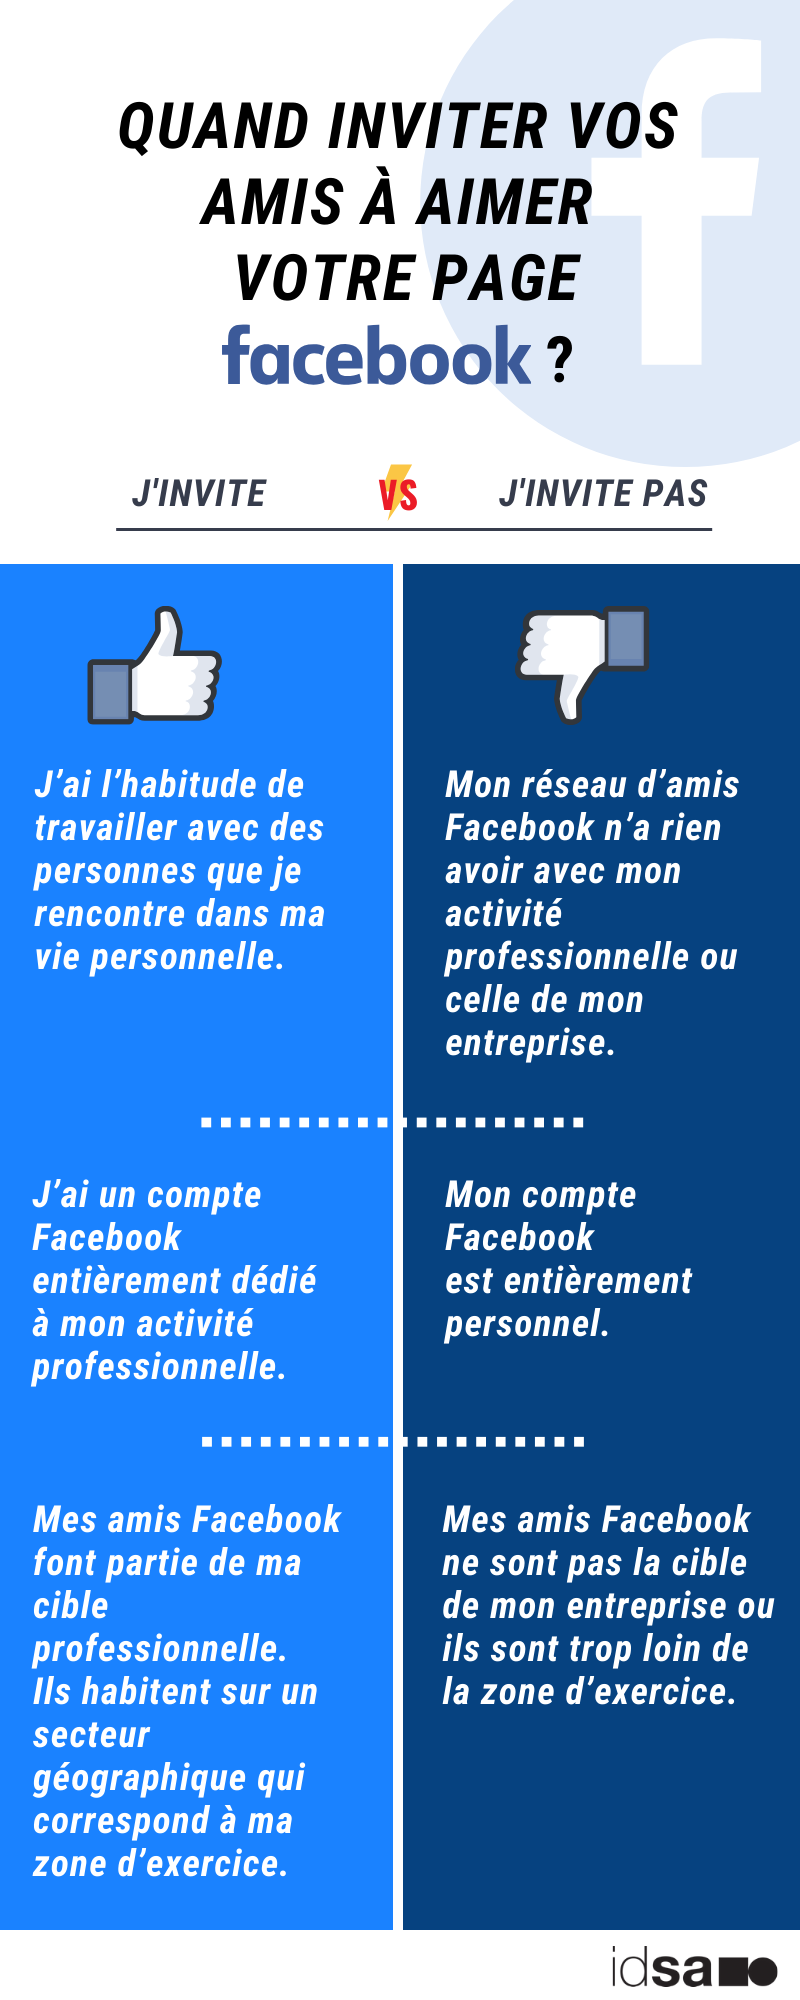 Infographie - Quand inviter ses amis à aimer sa page Facebook ?